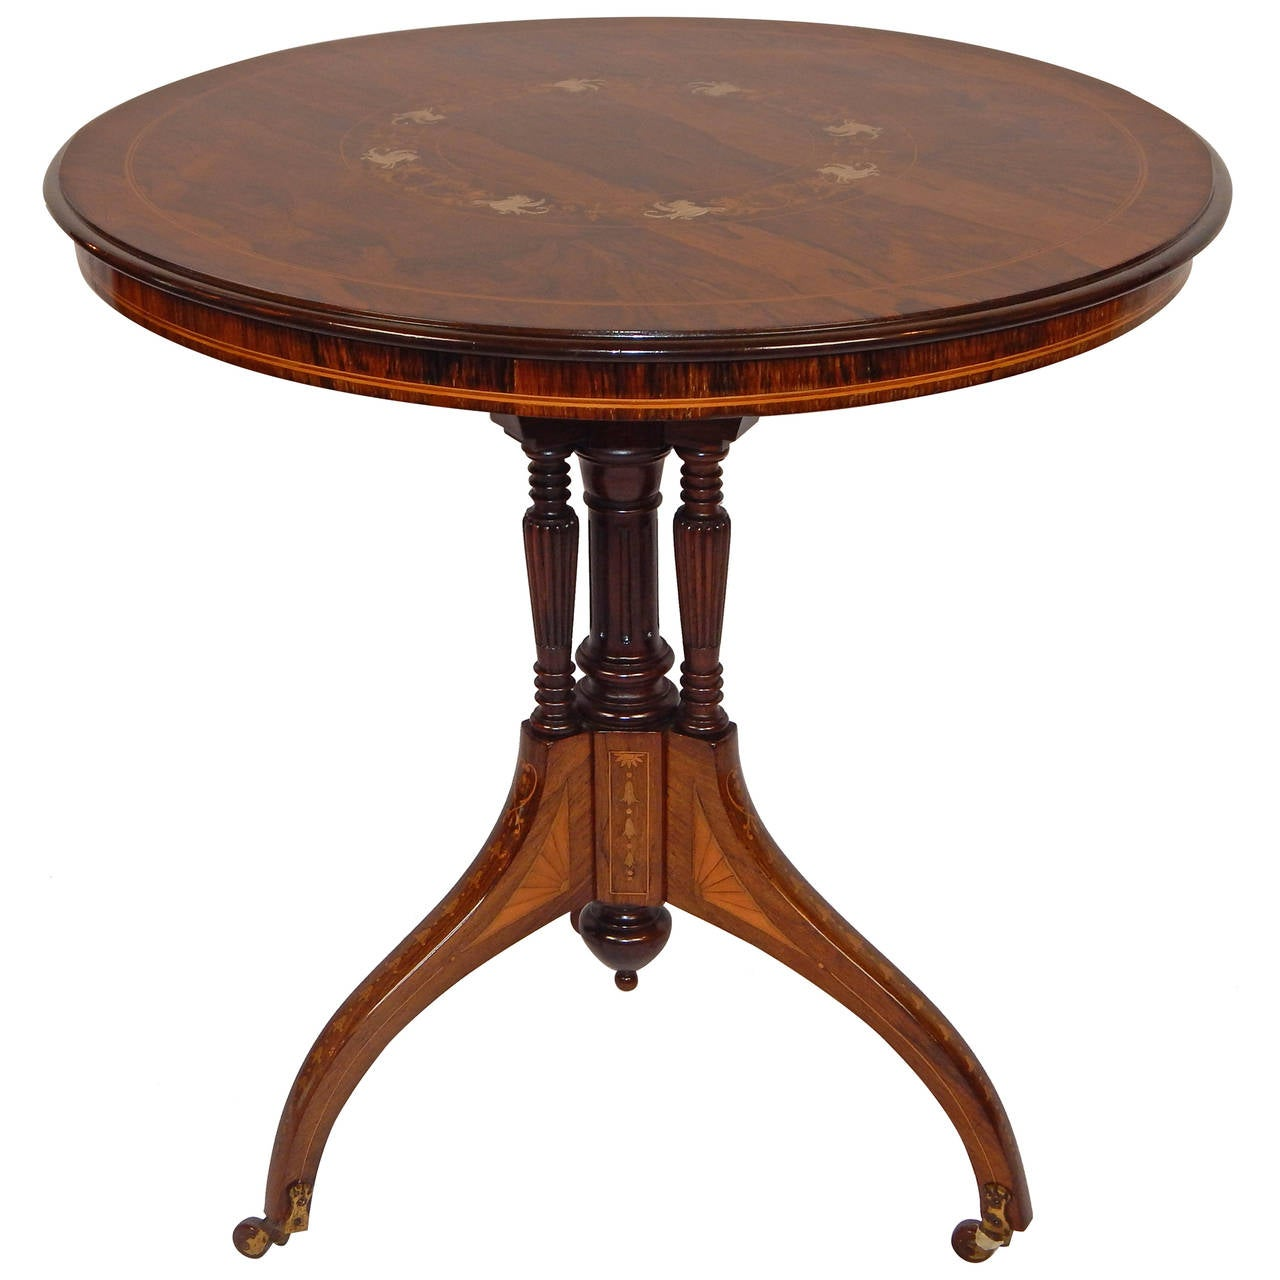 English edwardian inlaid rosewood side table for sale at 1stdibs - Archives departementales 33 tables decennales ...